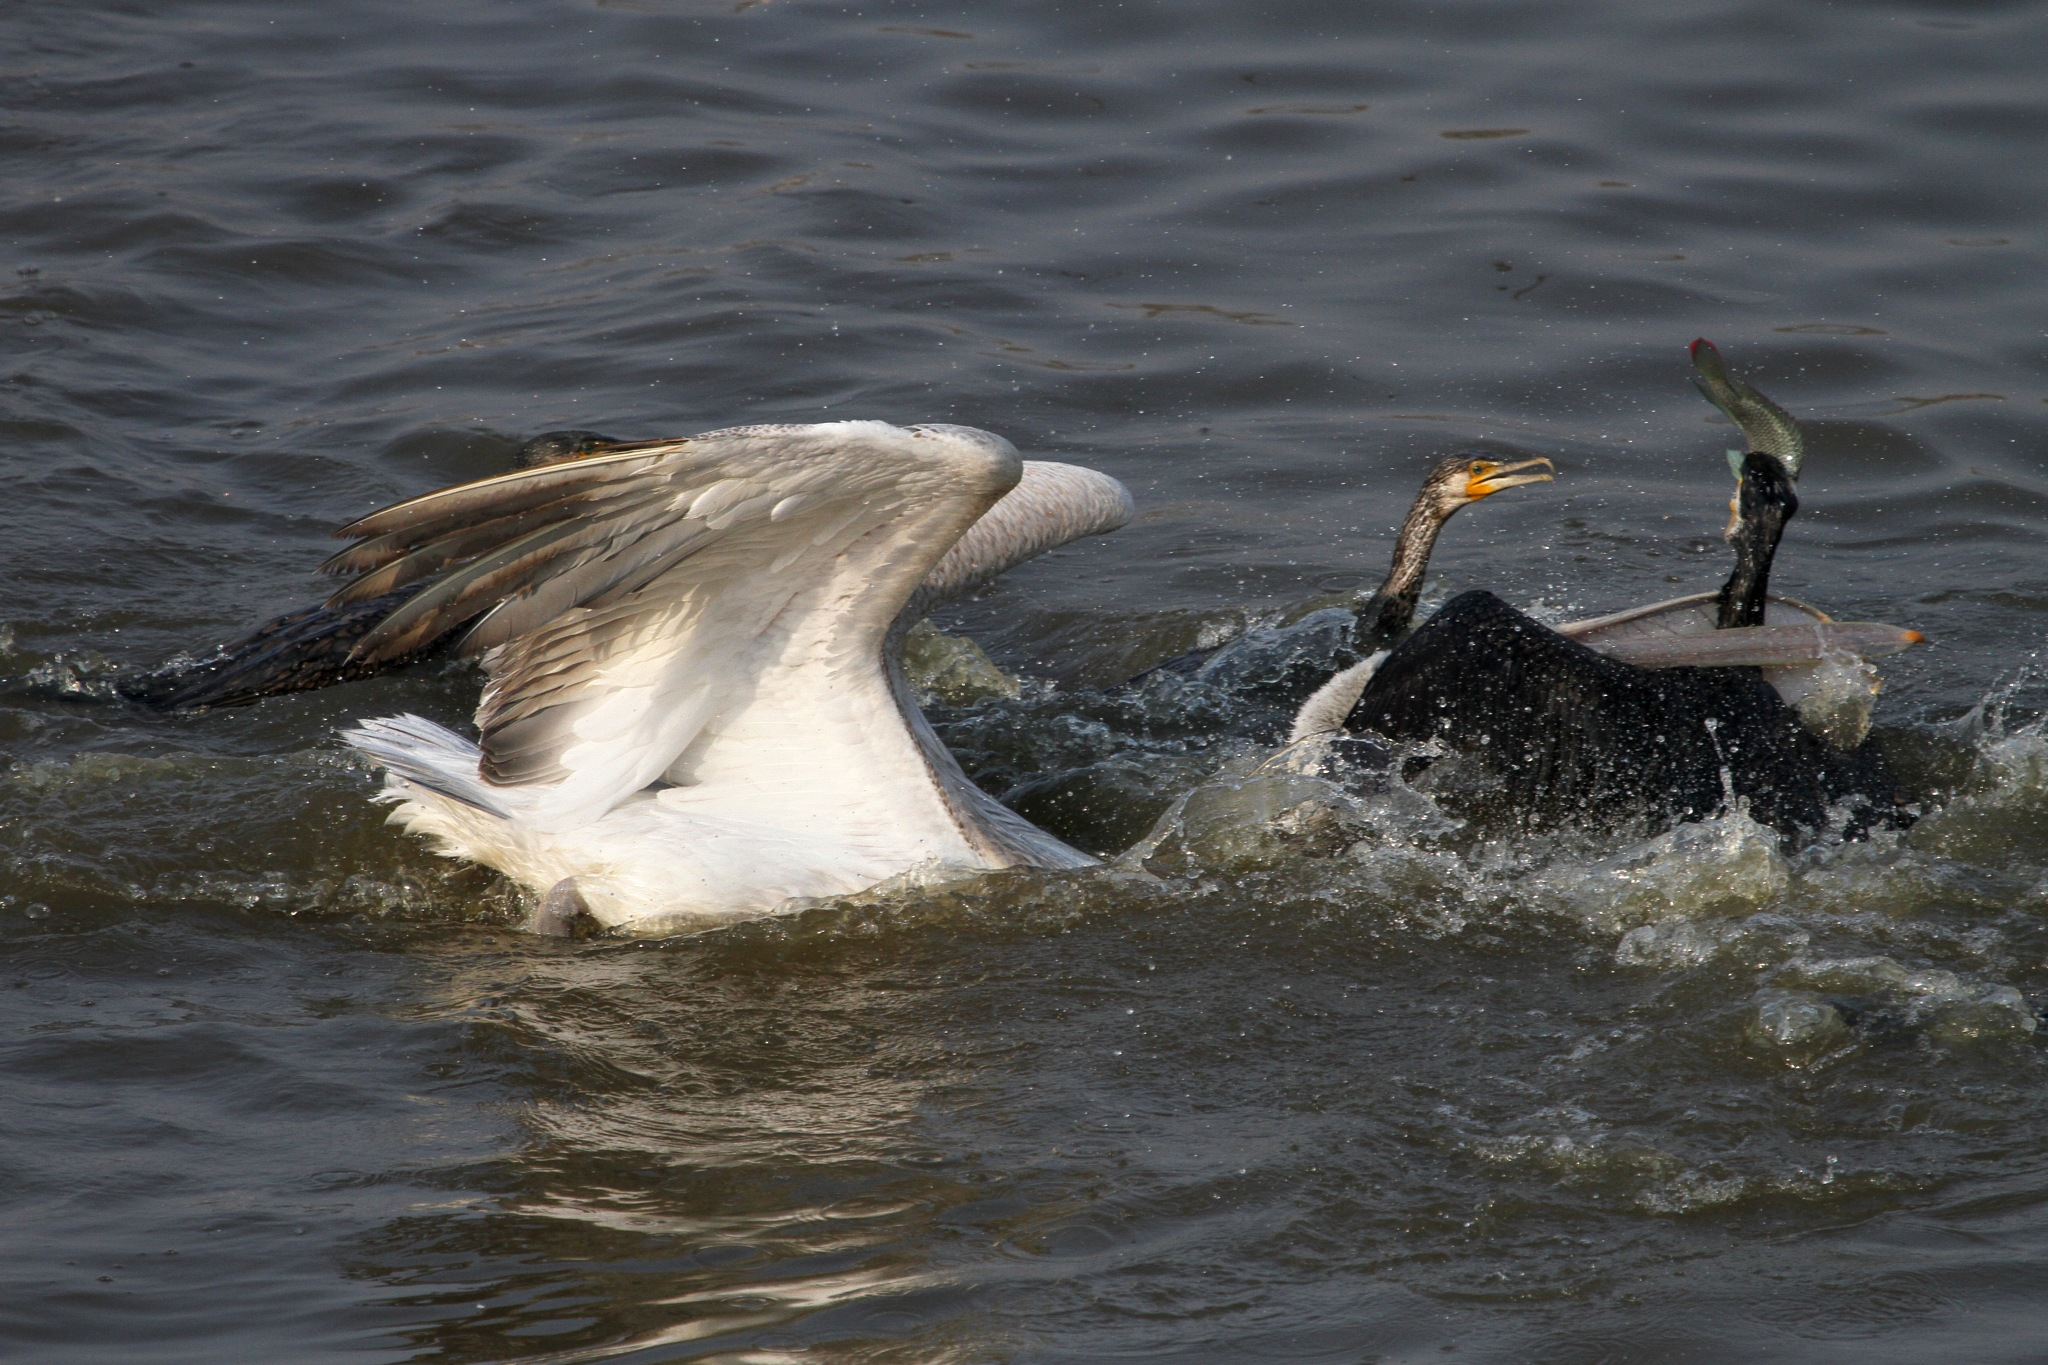 Pelican and Great Cormorant fight for fish............... by NIRAJ MEHTA